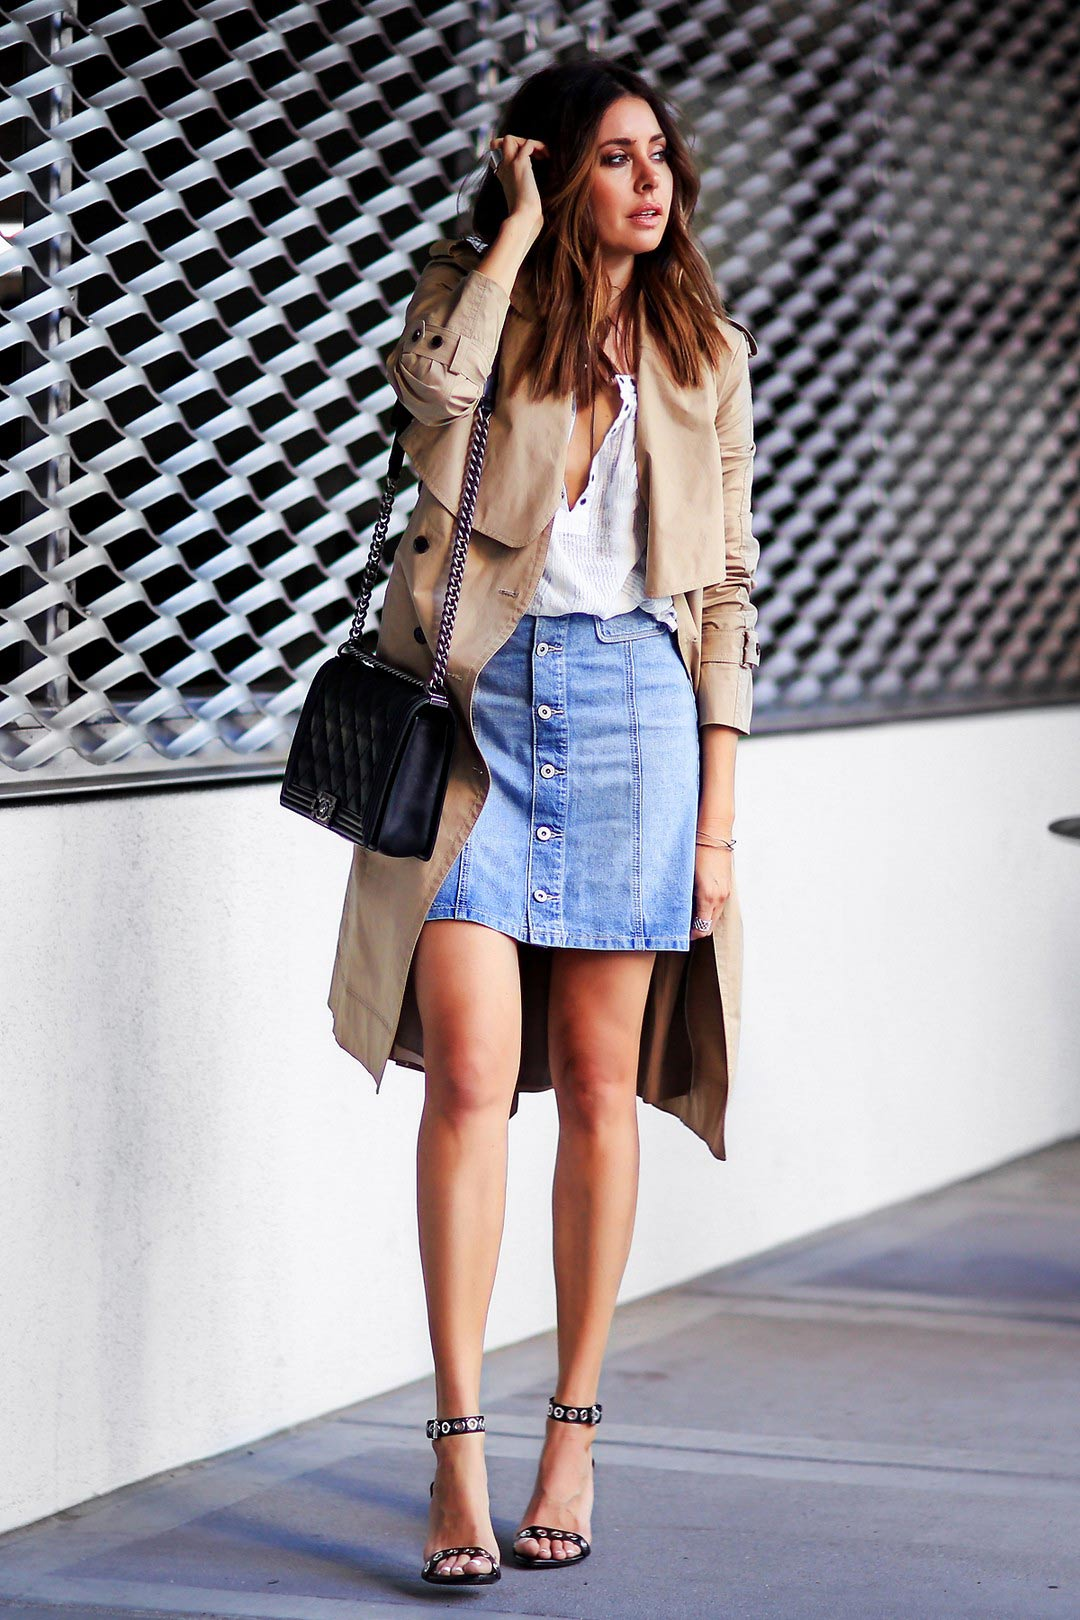 fashioned-chic-denim-skirt